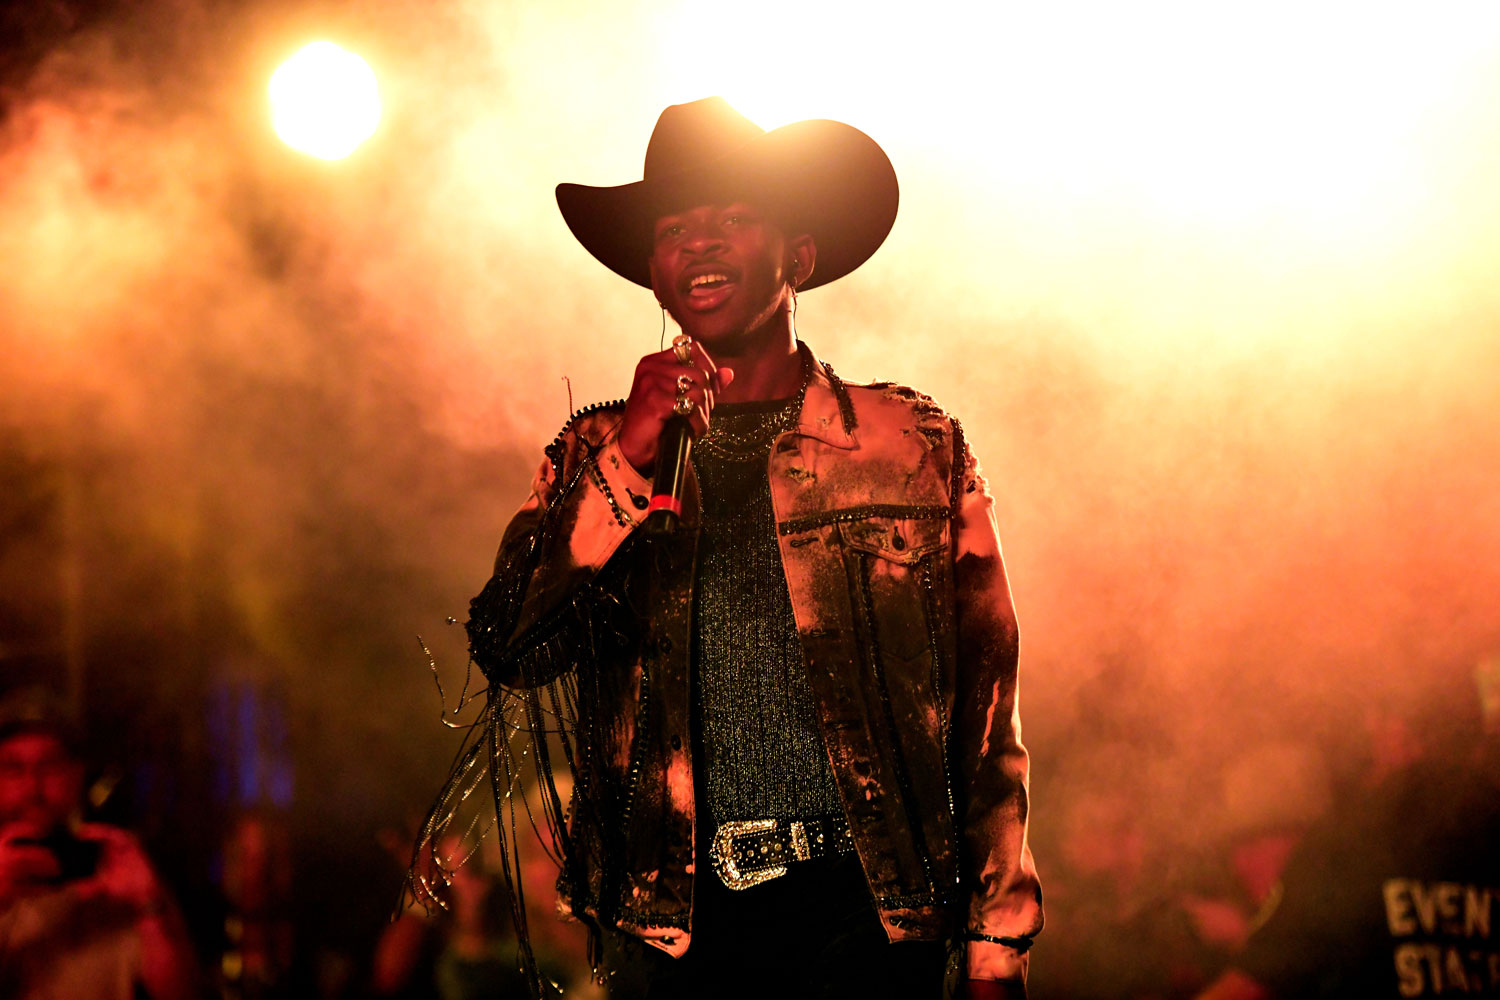 Lil Nas X Keeps Riding Down the Old Town Road on His Debut EP '7'